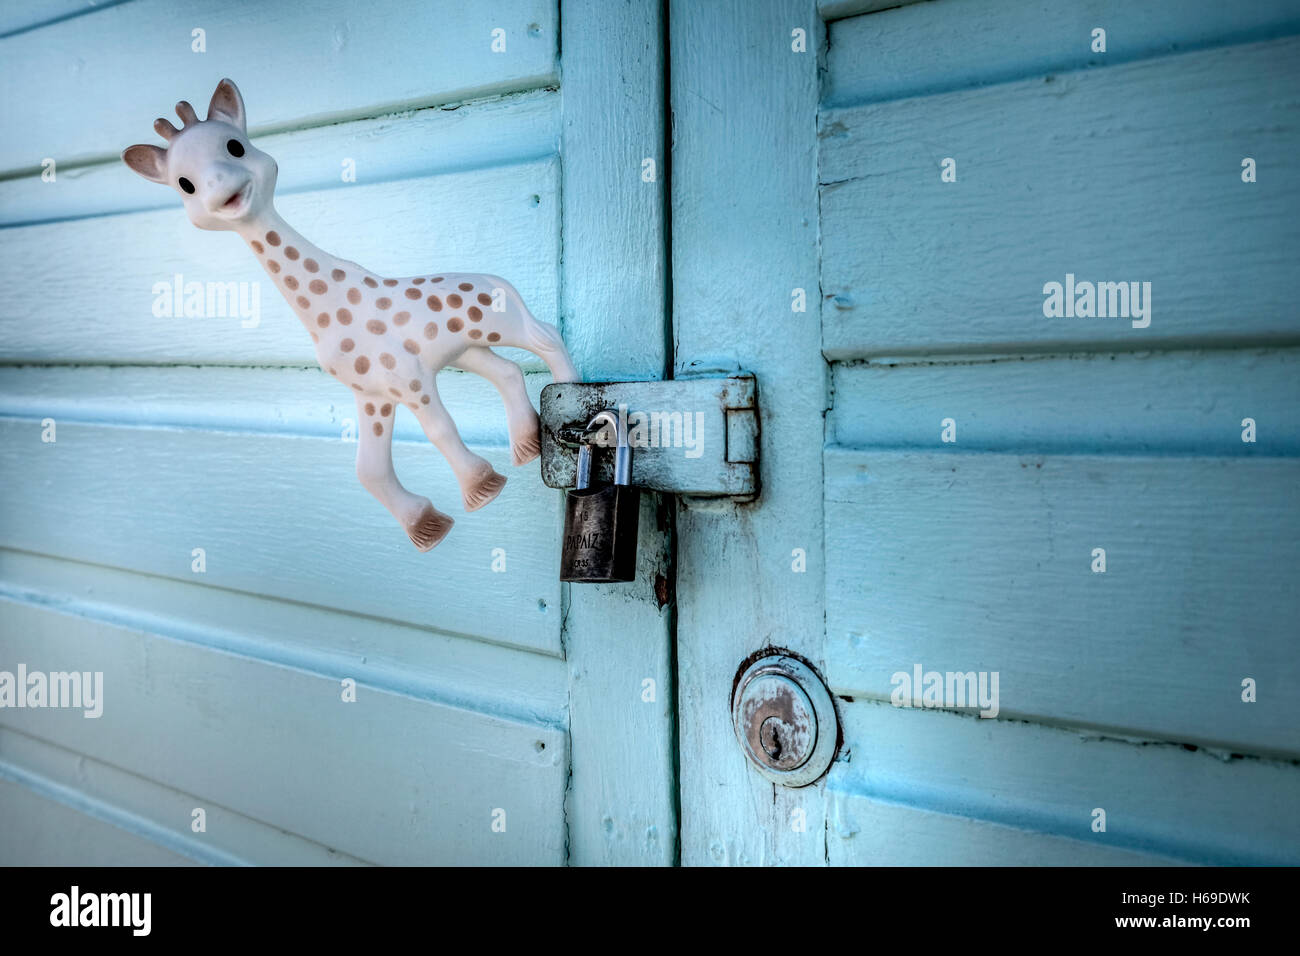 a toy giraffe hanging on a pad locked door - Stock Image